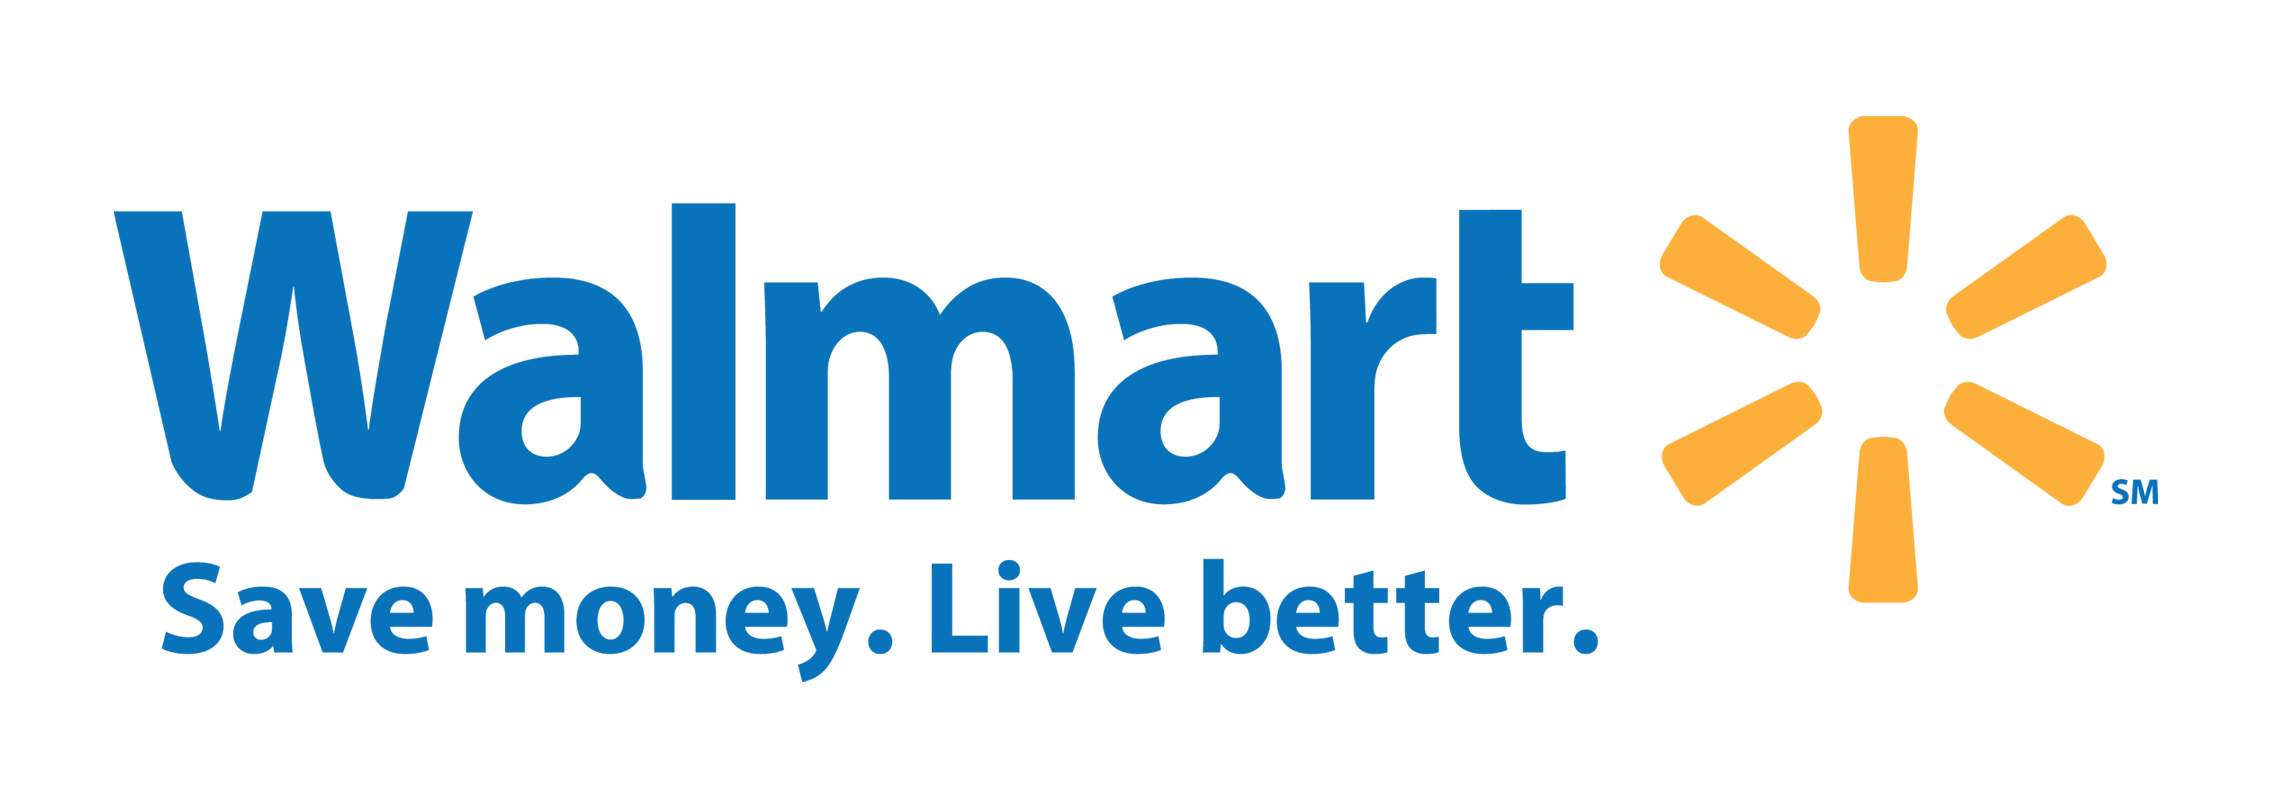 How to save png with transparent background. Walmart logo image purepng